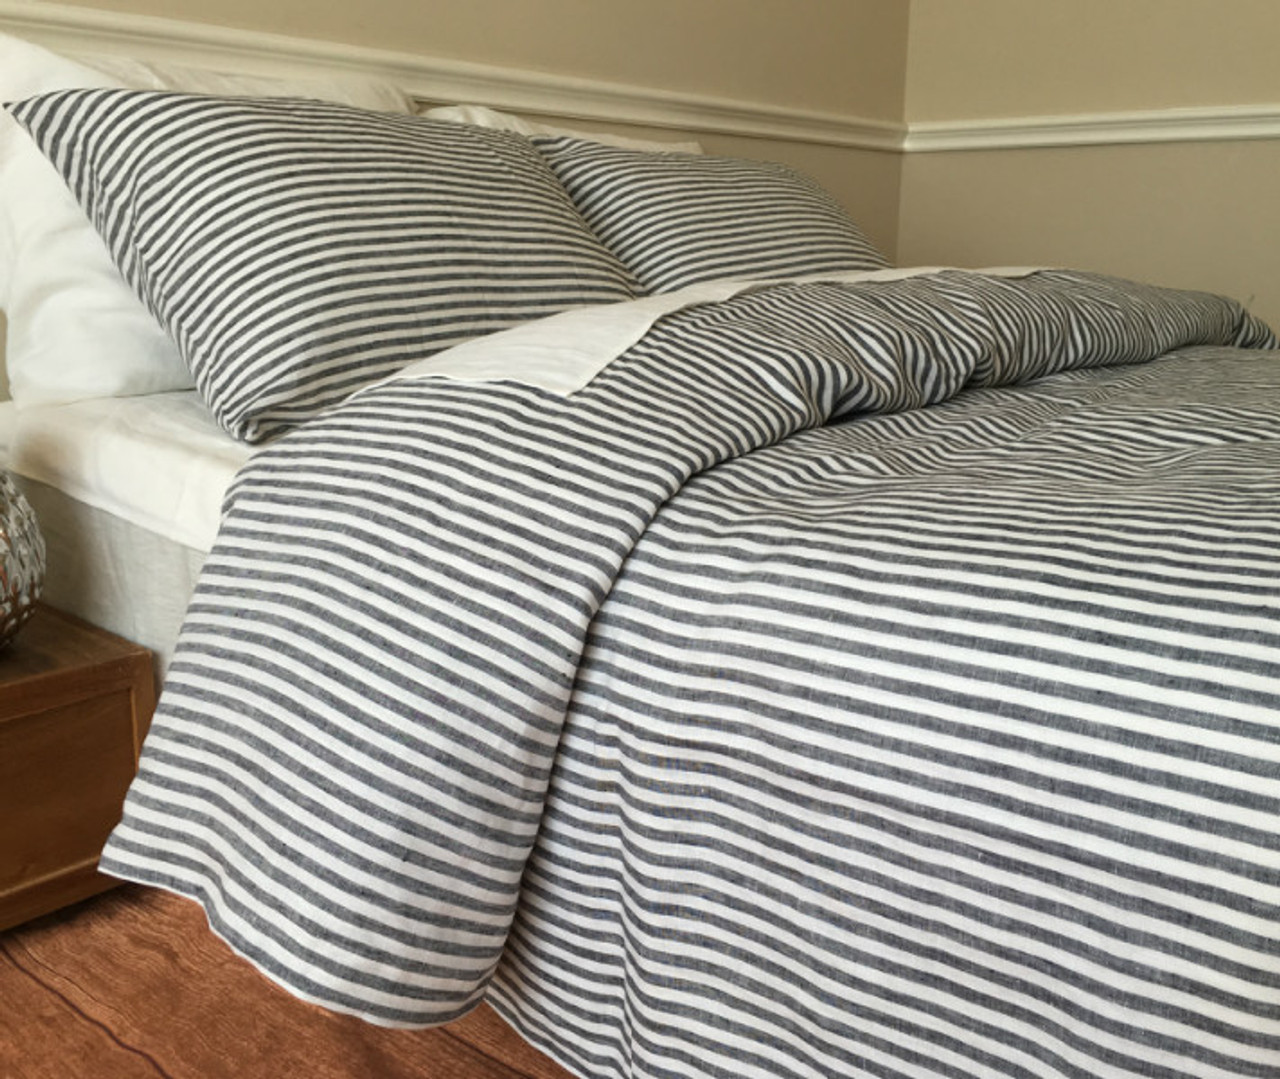 duvet cover natural white nautical stripe striped handmade navy in a linen and